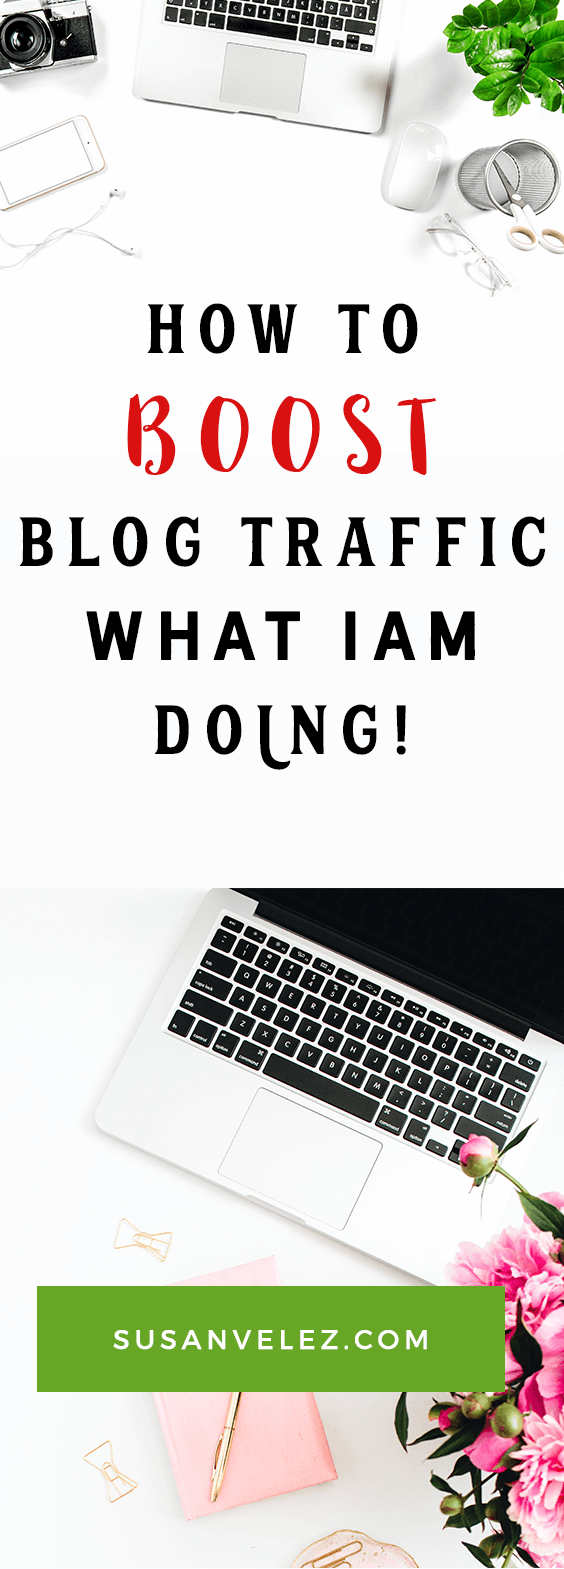 My blog traffic report on how I am using social media. If you want to make money with a blog, it's important to find out what will grow your blog. While you won't make money blogging fast, you need to learn how to drive traffic to your blog. #newbloggers, #trafficreport #bloggingnewbies